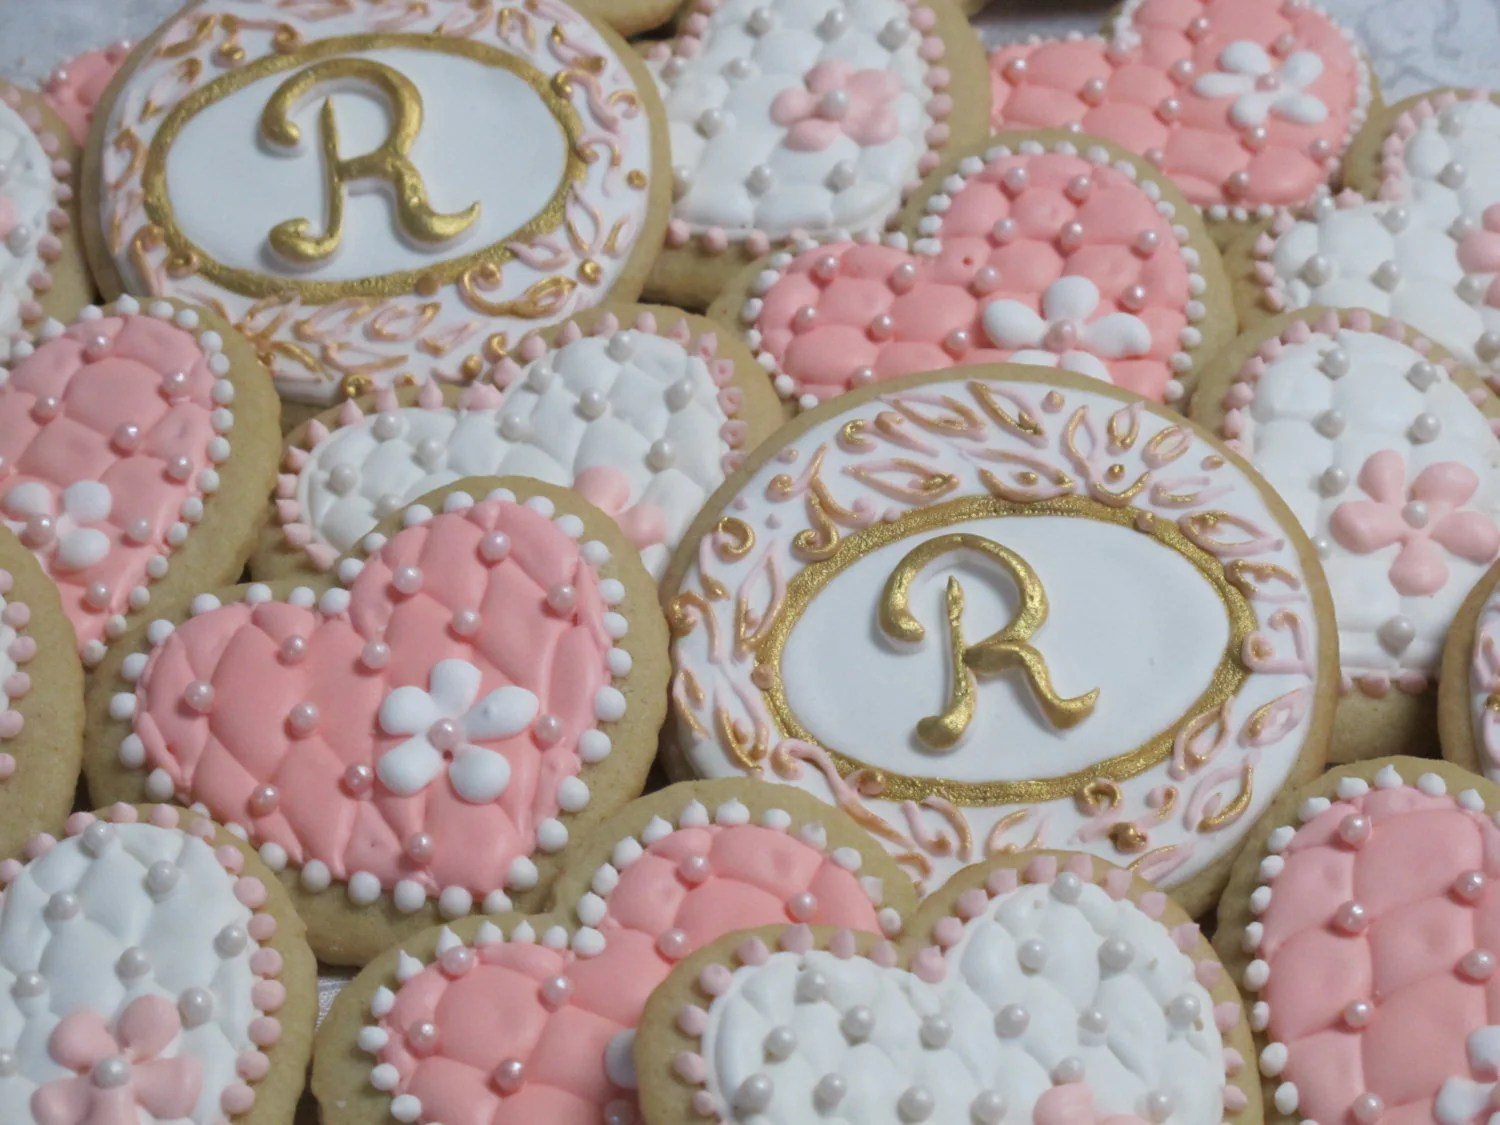 Wedding Hearts And Initials Decorated Sugar Cookies By